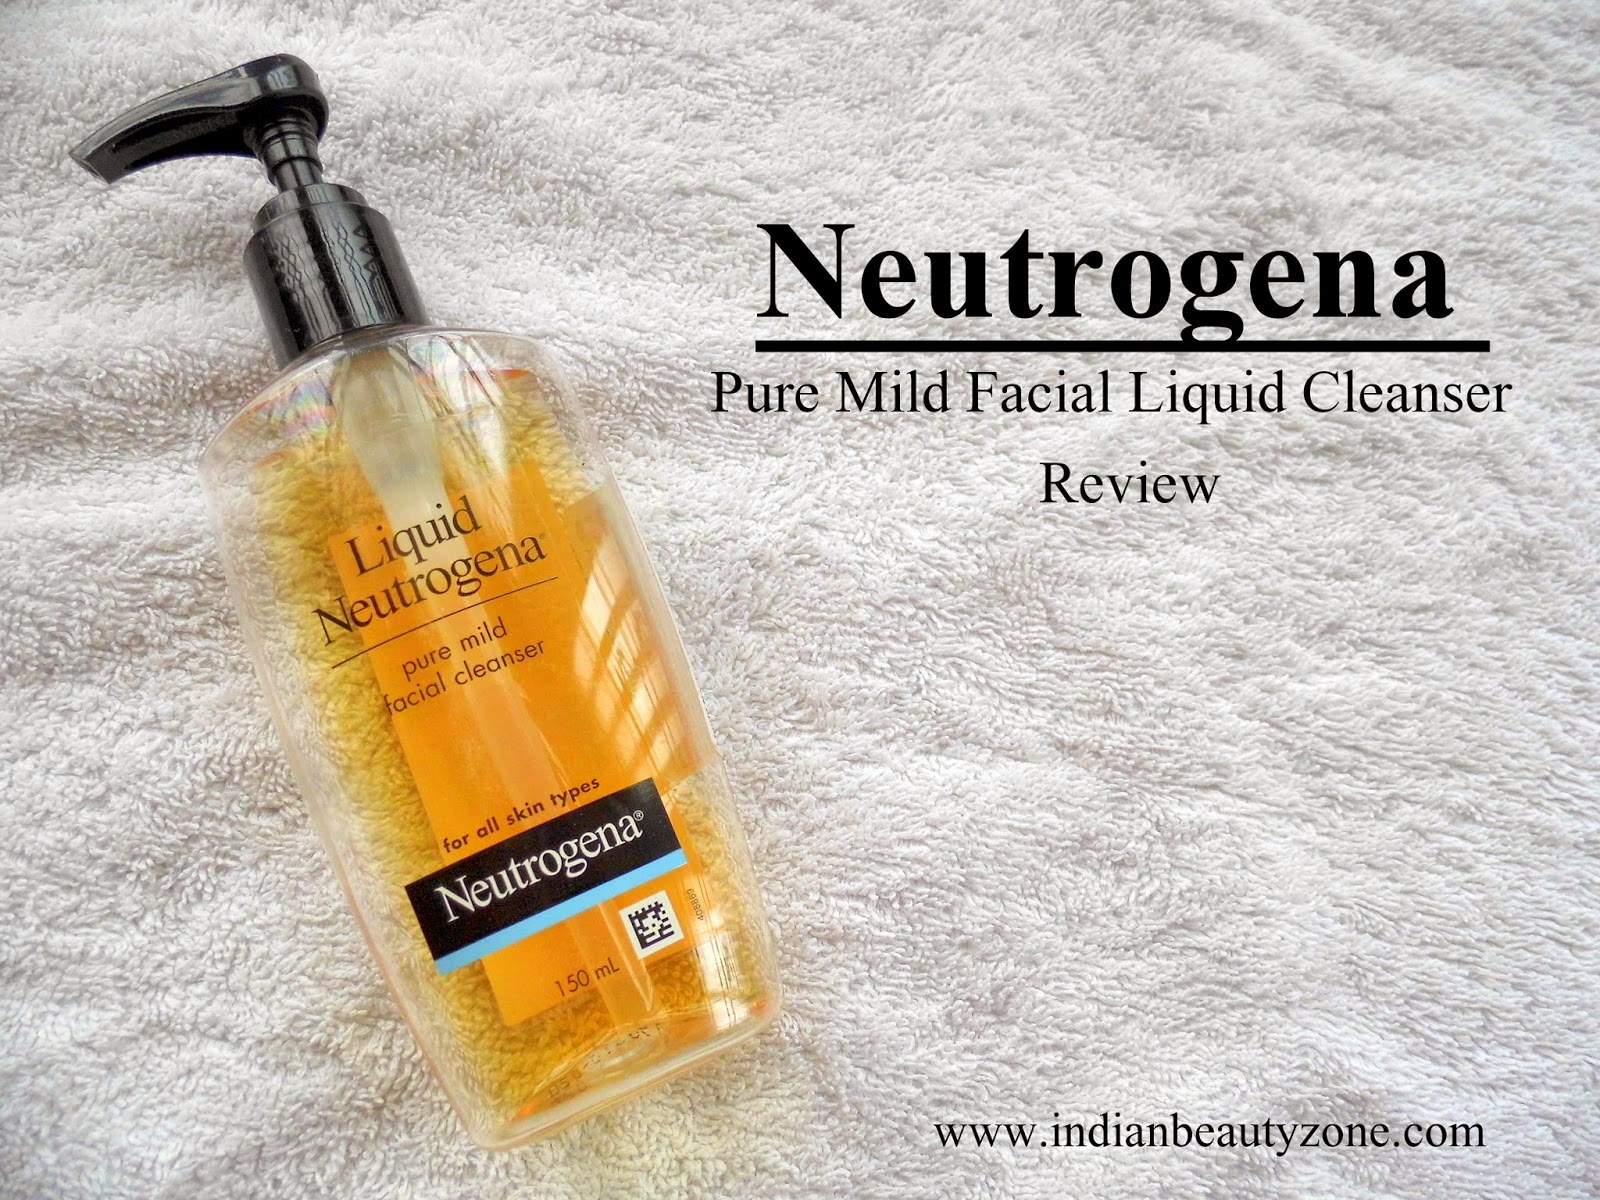 Neutrogena Pure Mild Facial Liquid Cleanser Review - Indian Beauty Zone